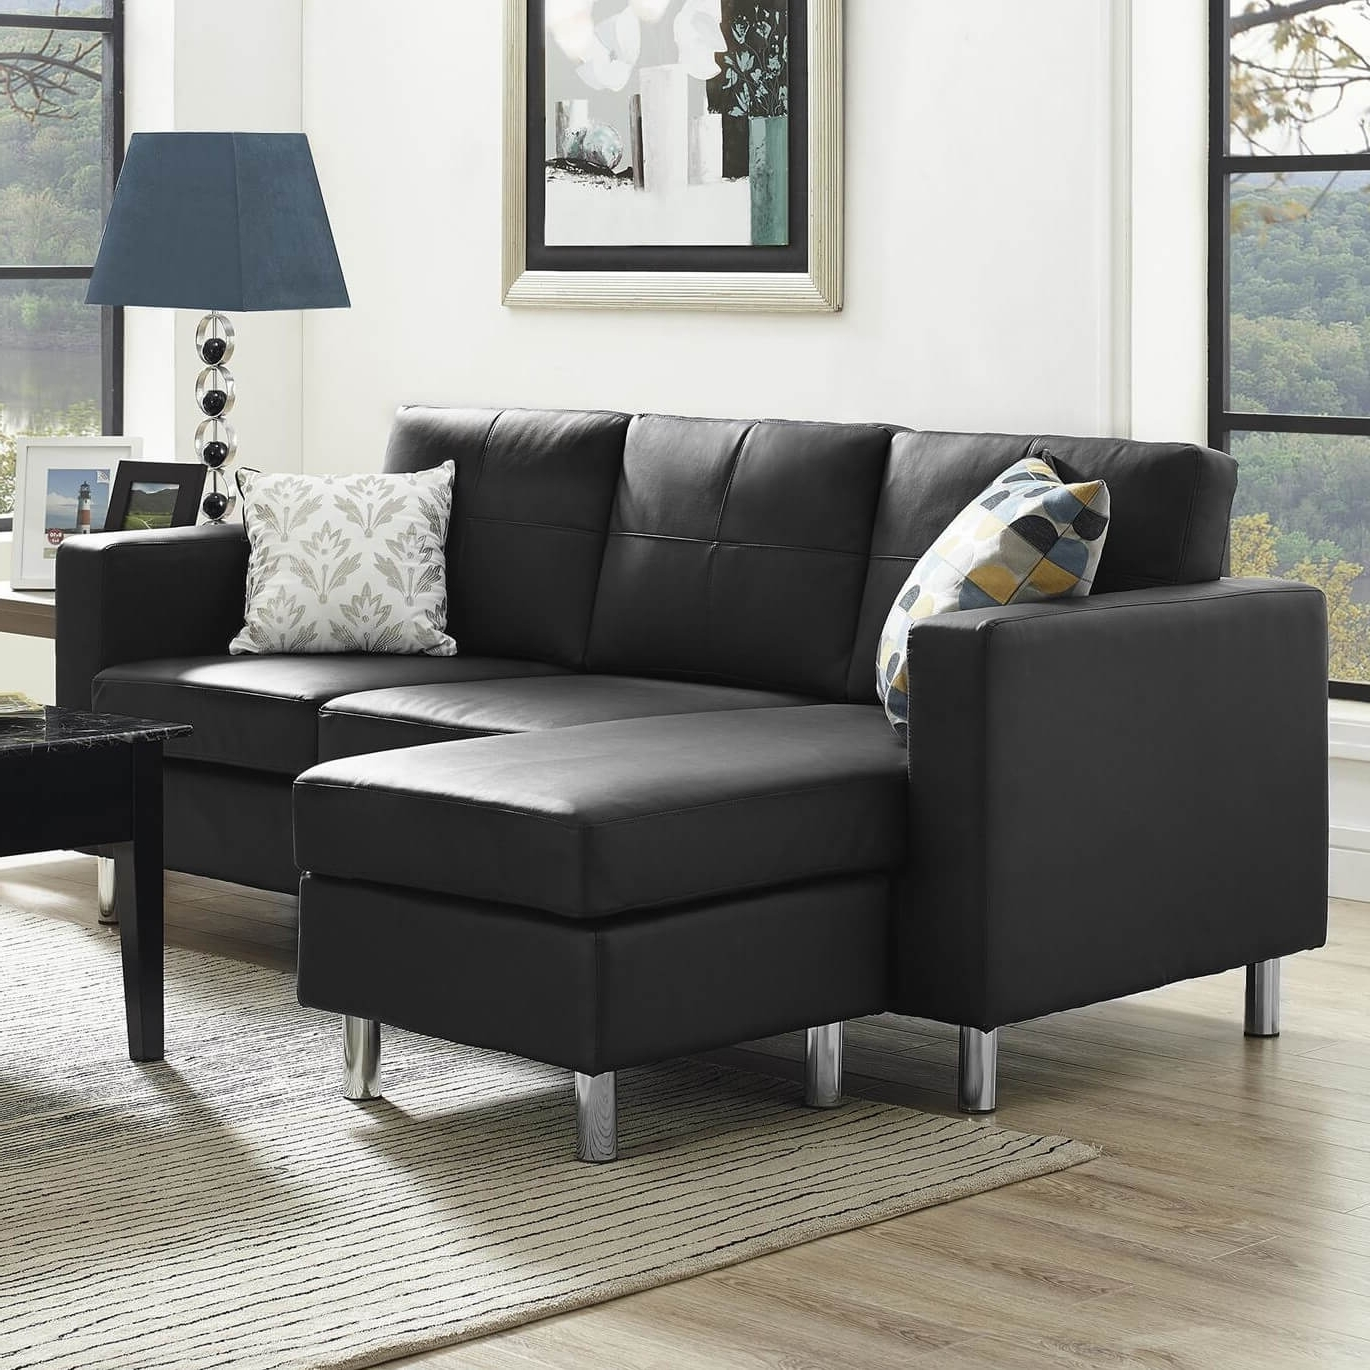 Well Known Modern Sectional Sofas For Small Spaces Throughout 40 Cheap Sectional Sofas Under $500 For (View 8 of 20)